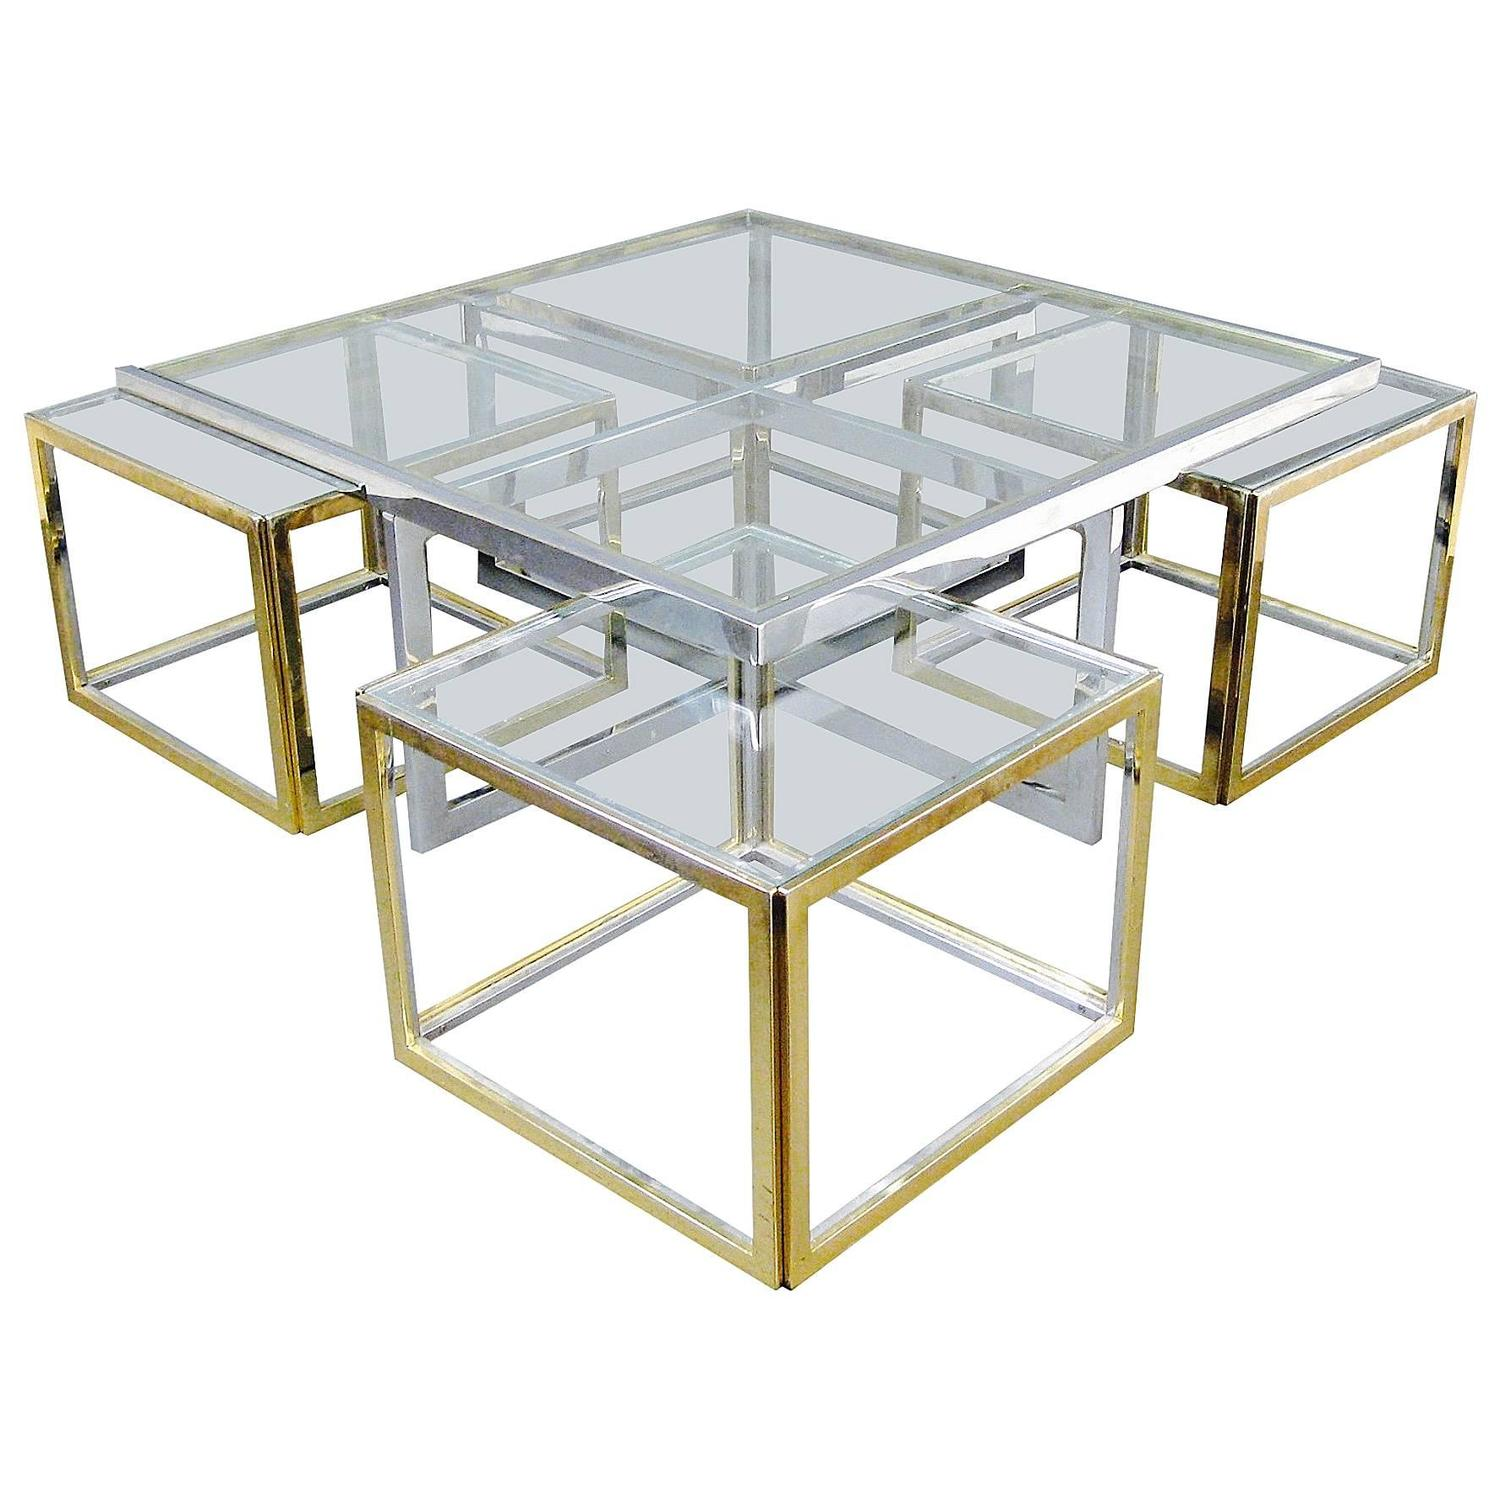 large glass and metal coffee table attributed to maison charles for sale at 1stdibs. Black Bedroom Furniture Sets. Home Design Ideas